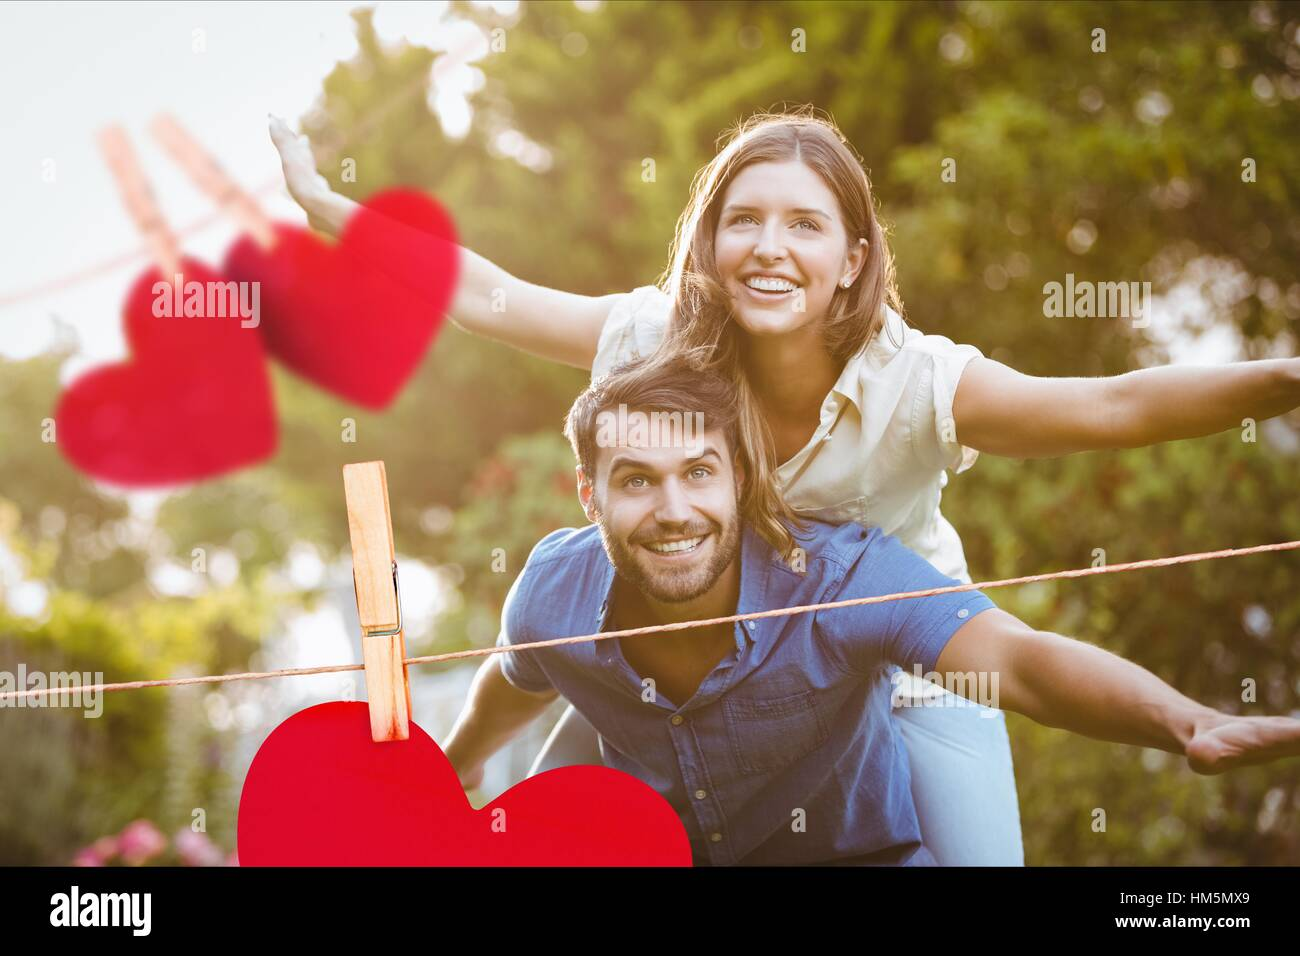 Man giving a piggyback ride to woman - Stock Image